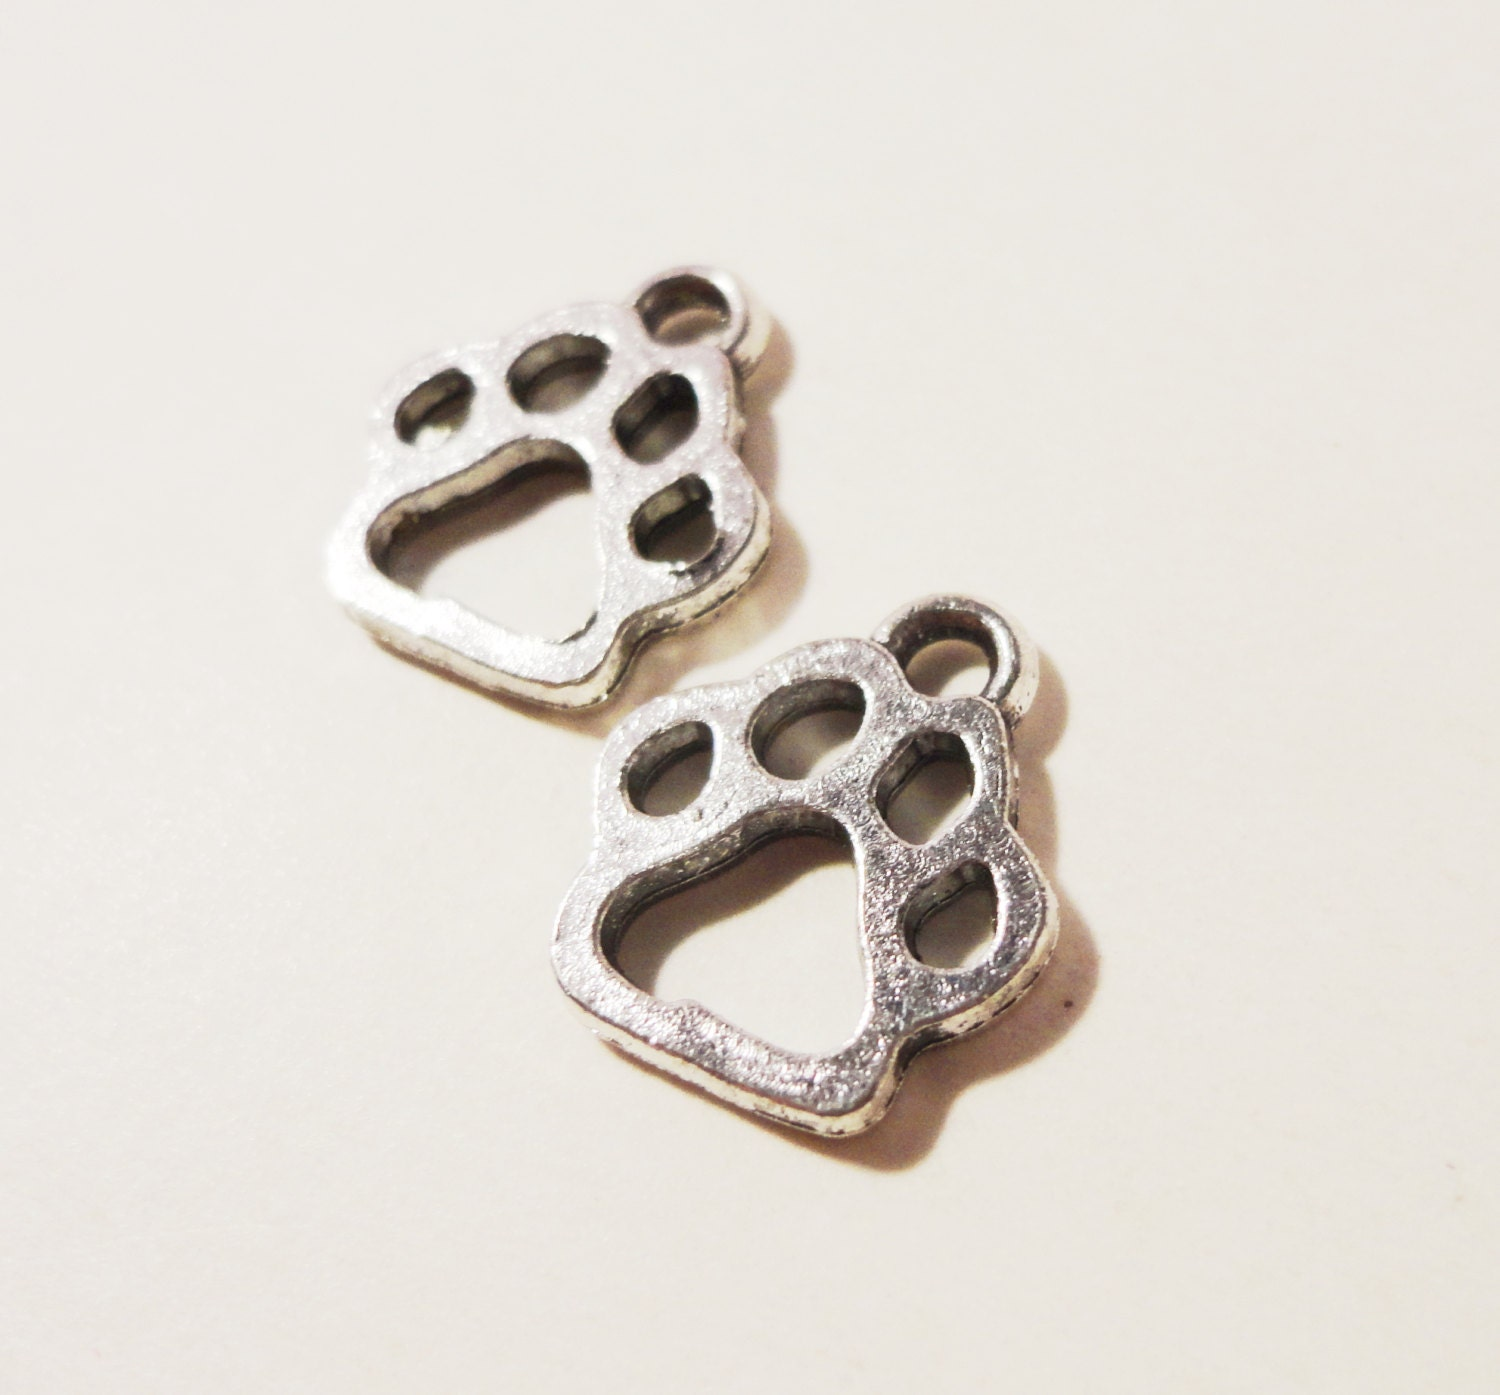 paw print charms 13x11mm antique silver metal paw charms